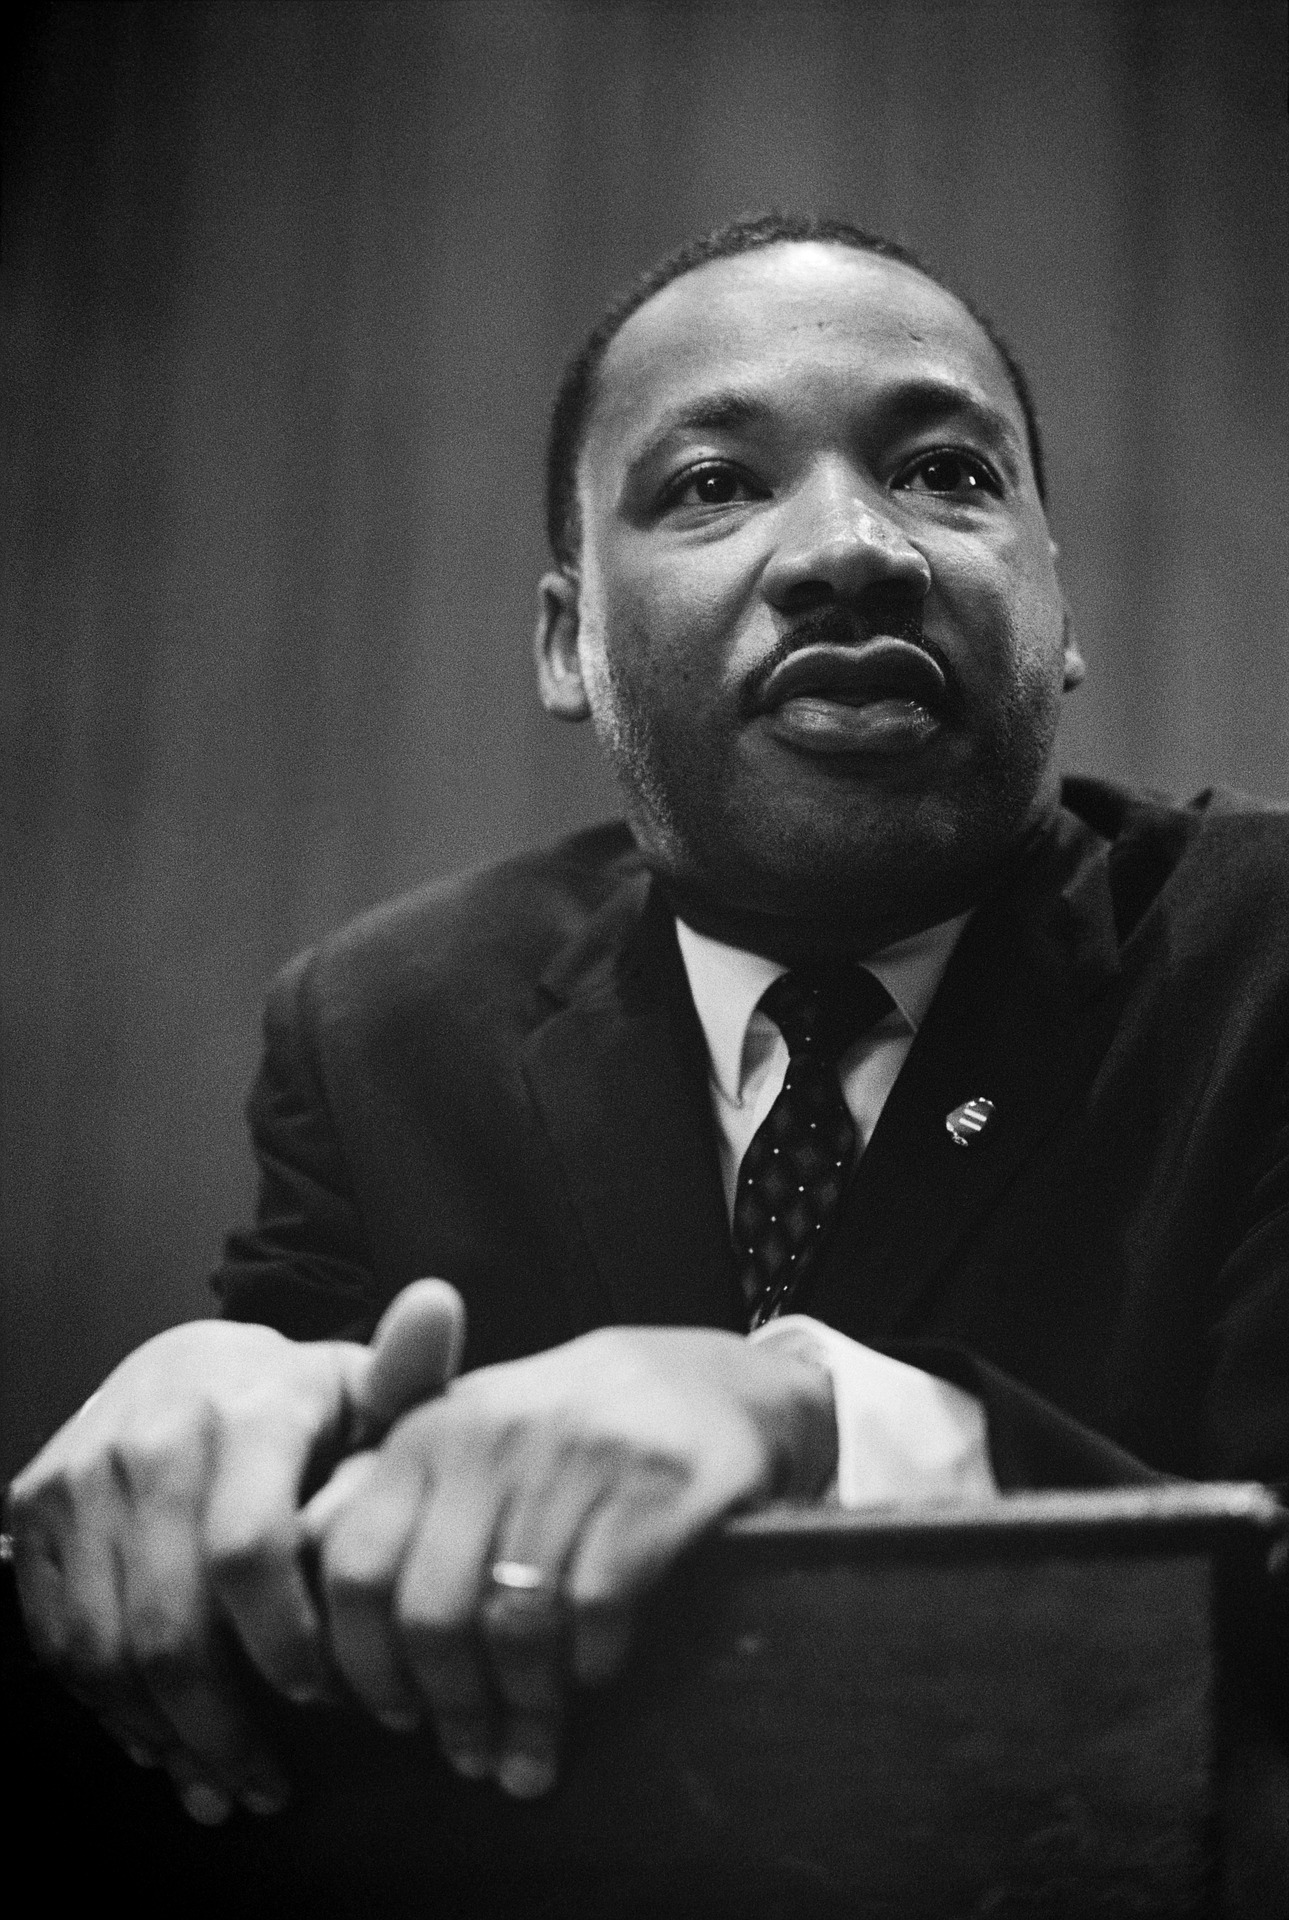 Rev. Dr. Martin Luther King stands at a lectern.